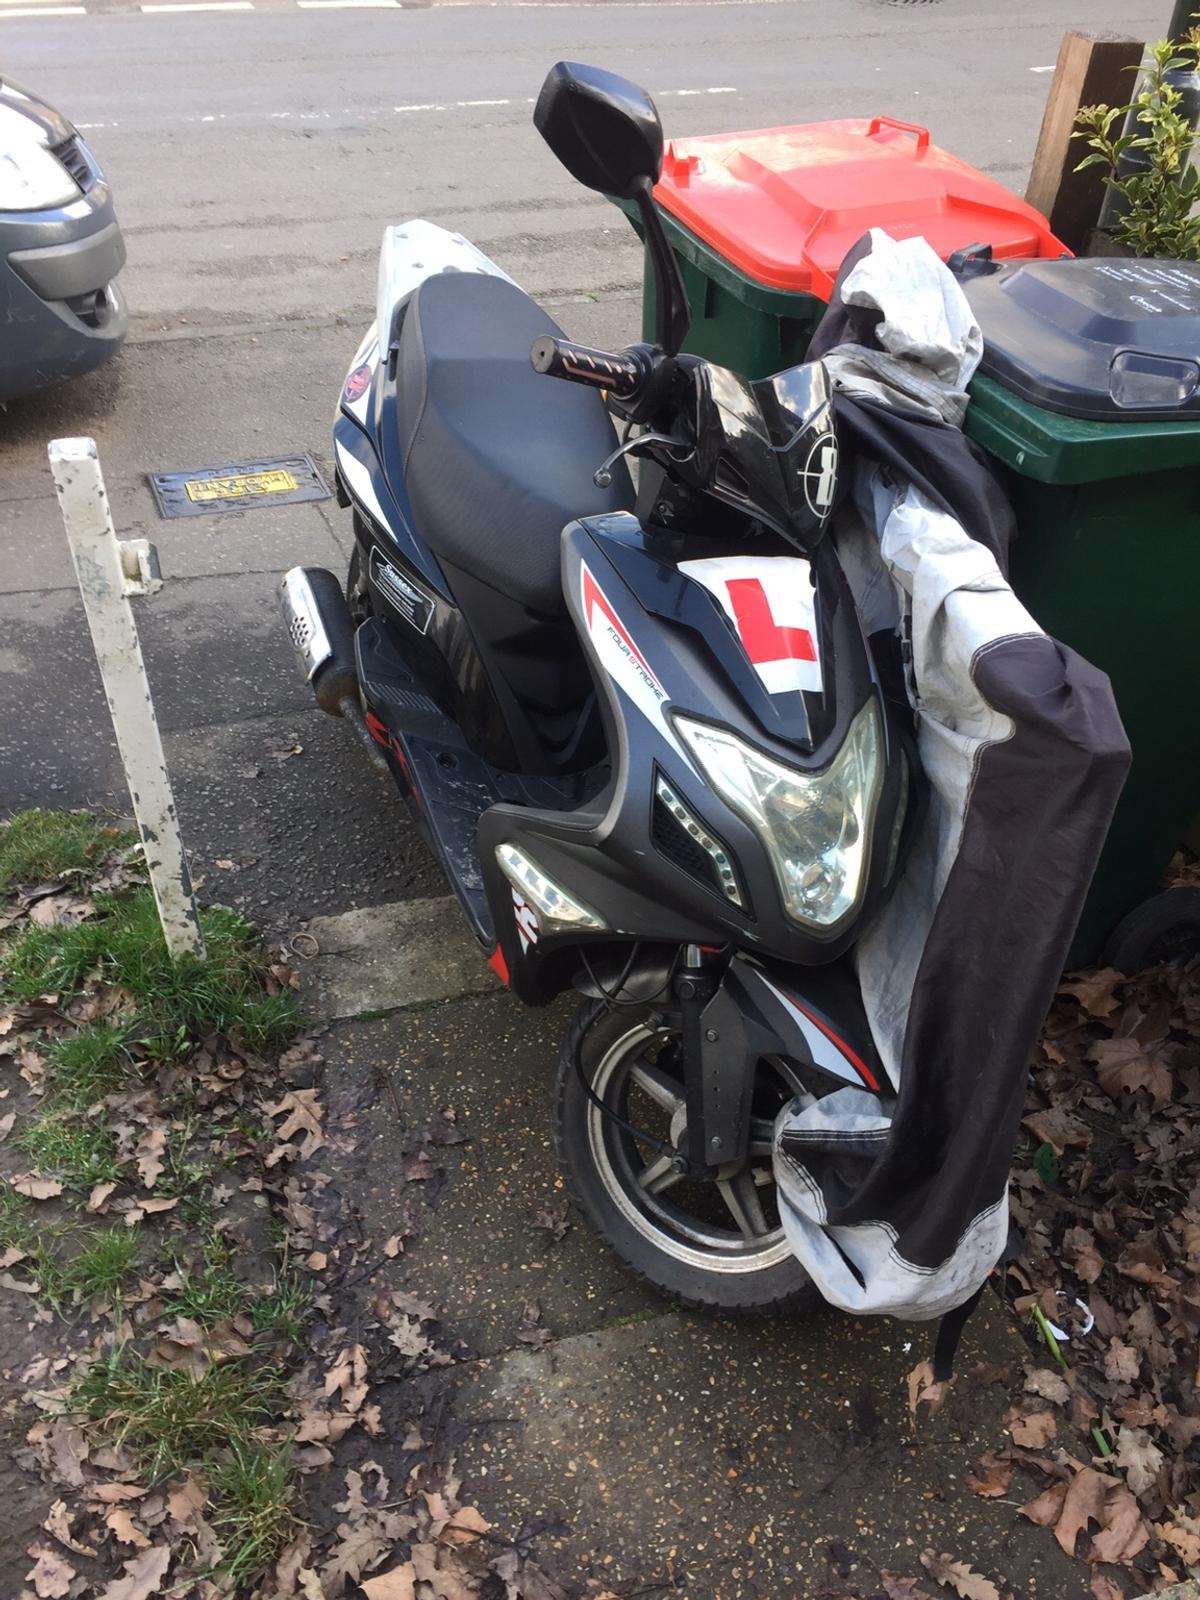 Znen 125 moped